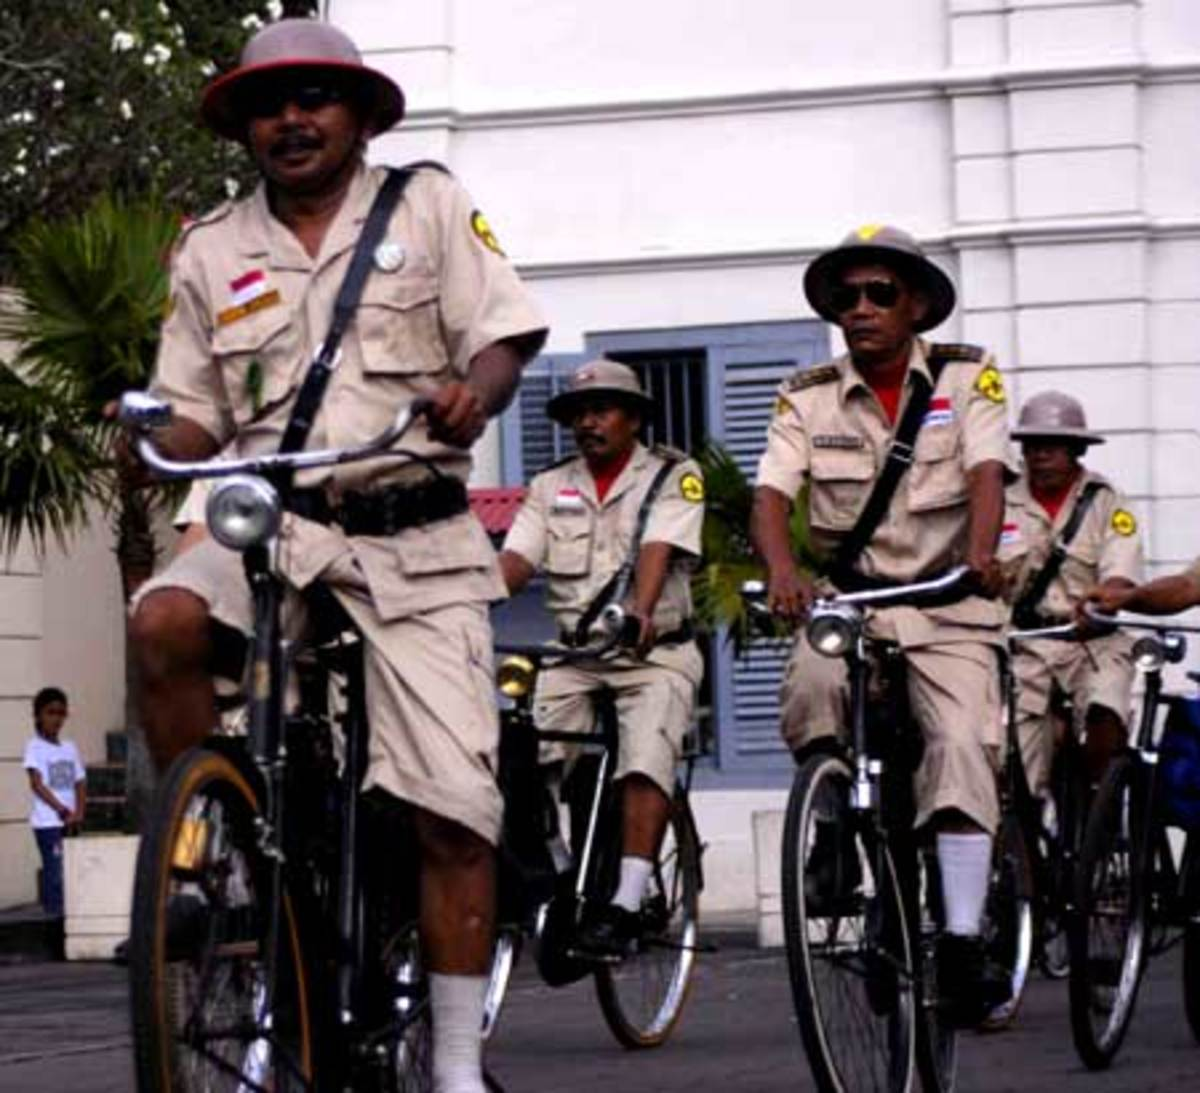 Yogya old bicycle club with their uniform. Indonesia people loves old bicycle